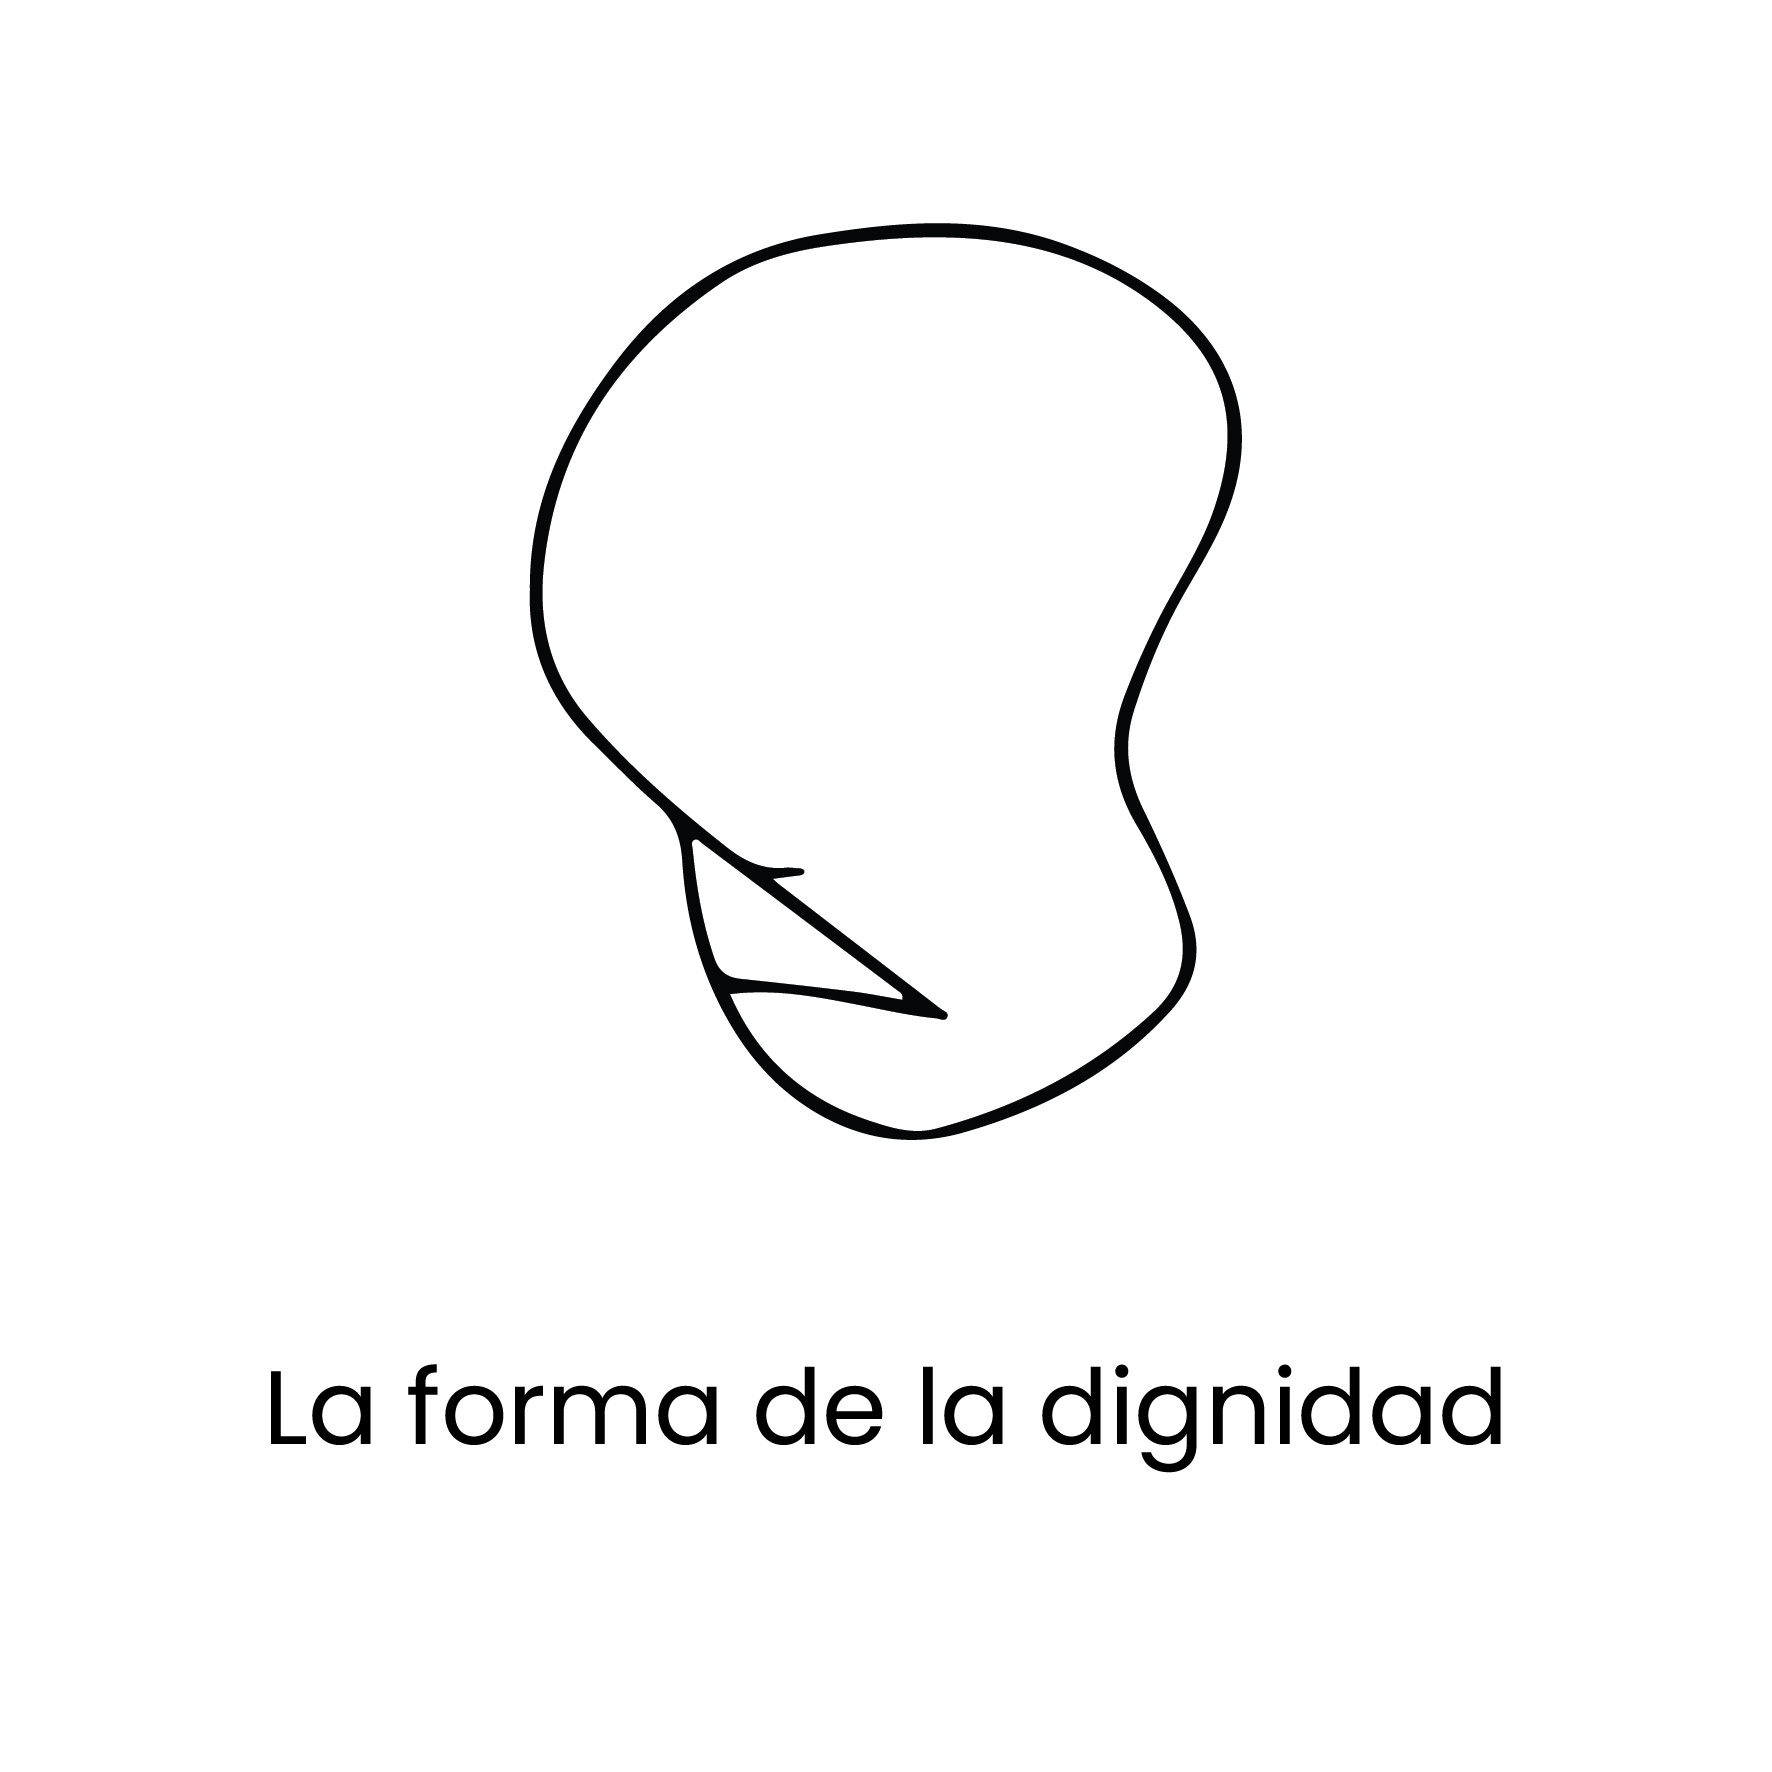 Shape of dignity gif